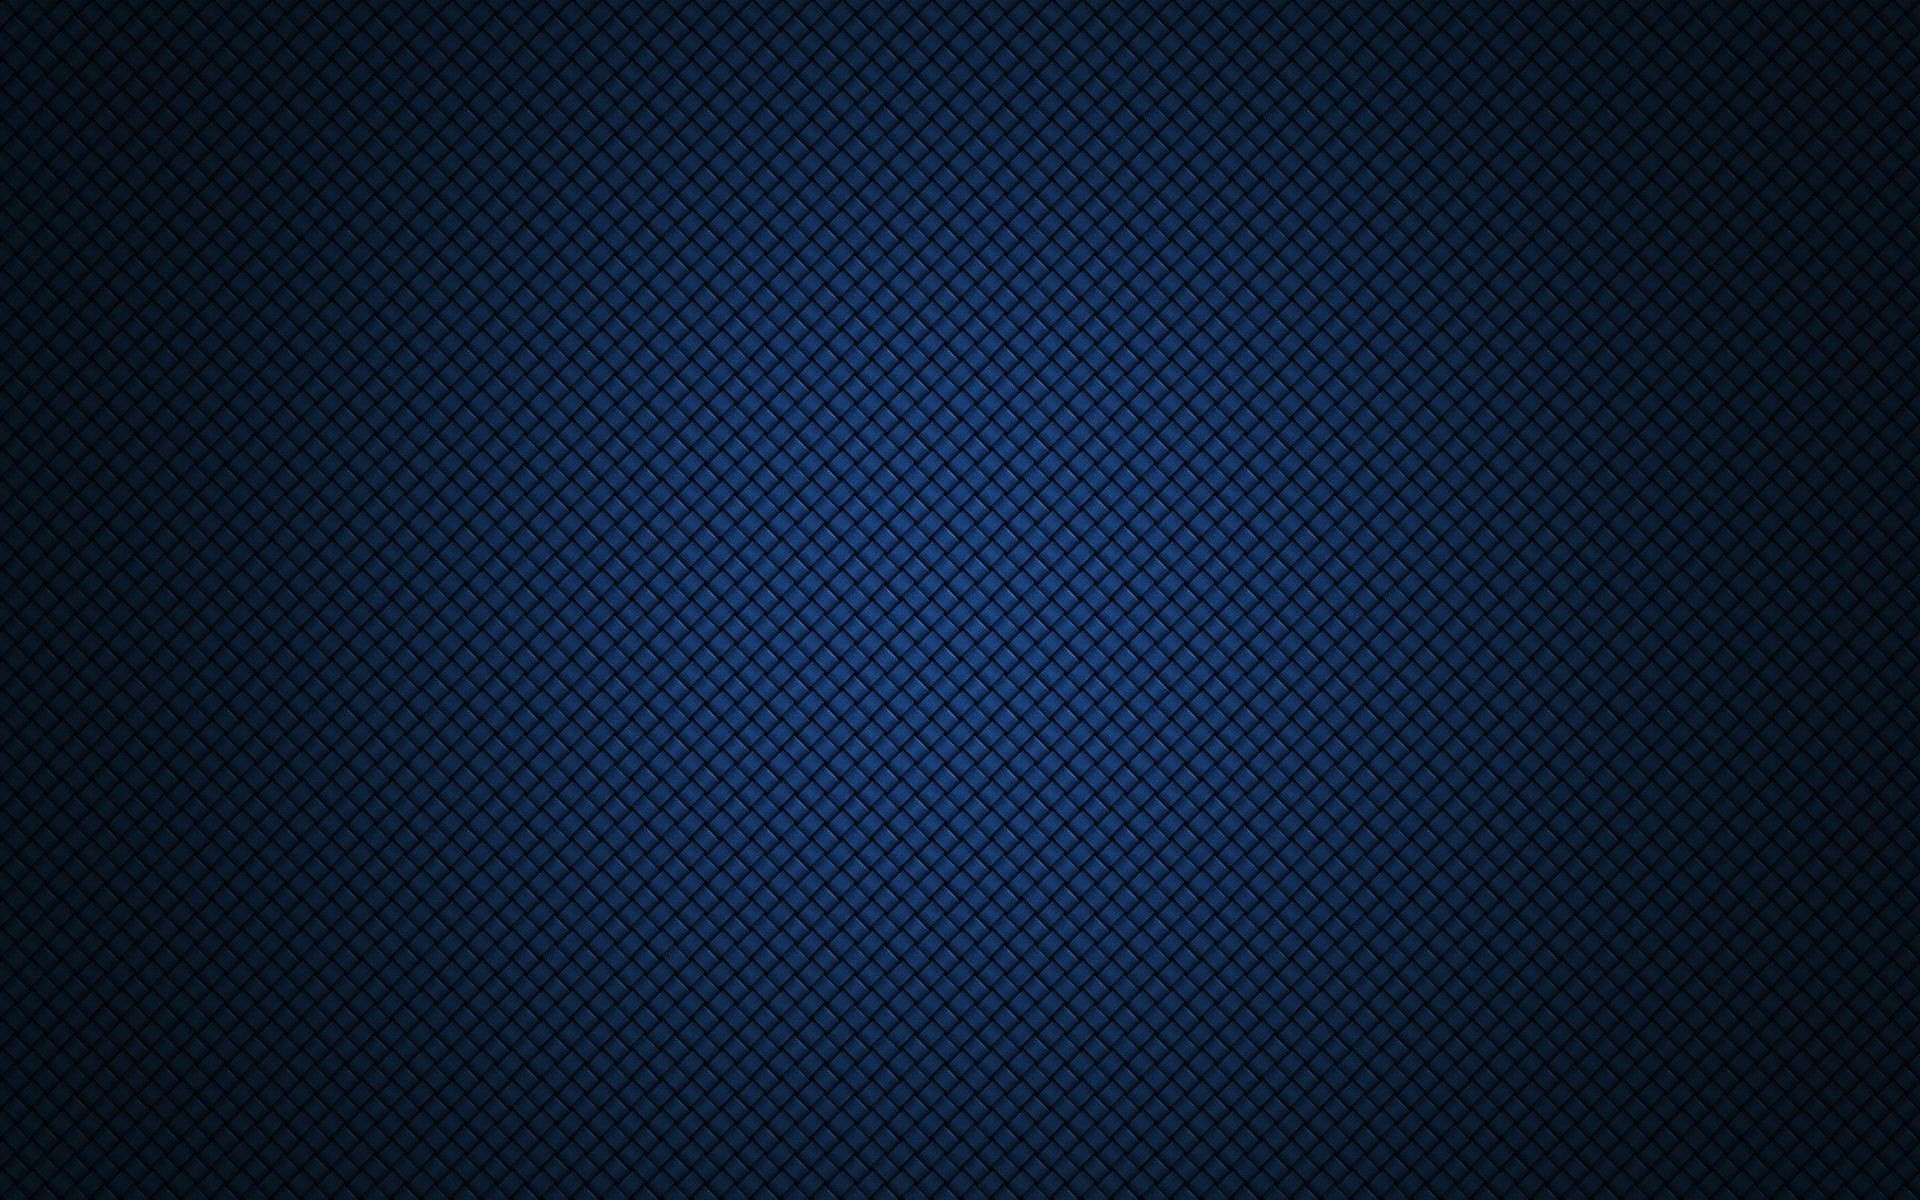 Dark blue checks plain HD wallpapers | HD Wallpapers Rocks